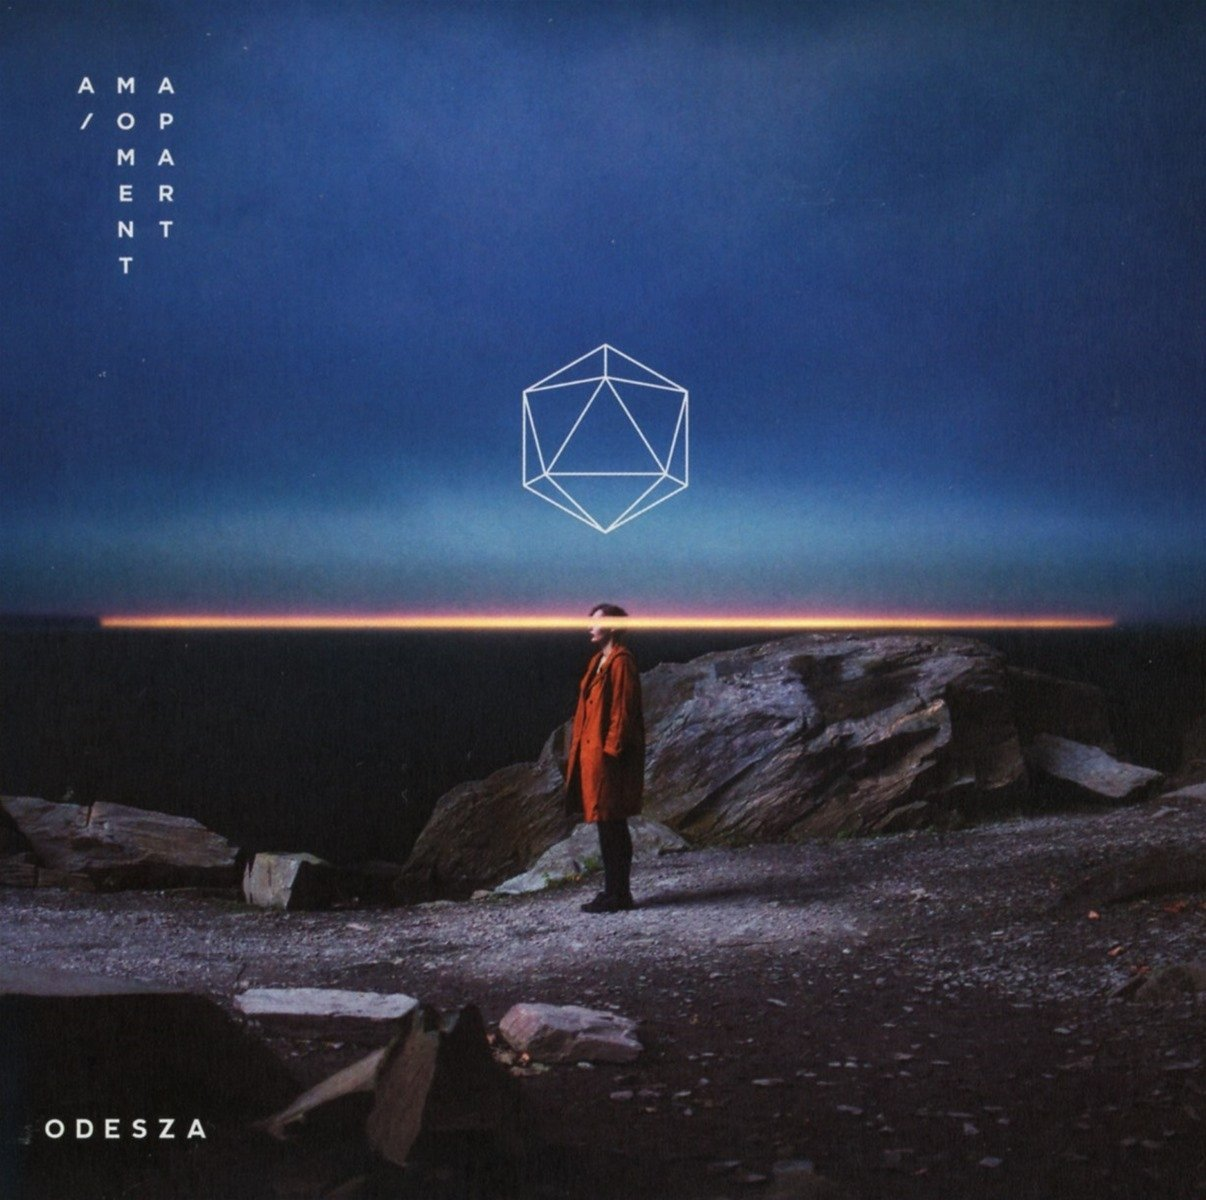 ODESZA, 'Corners of the Earth' | Track Review